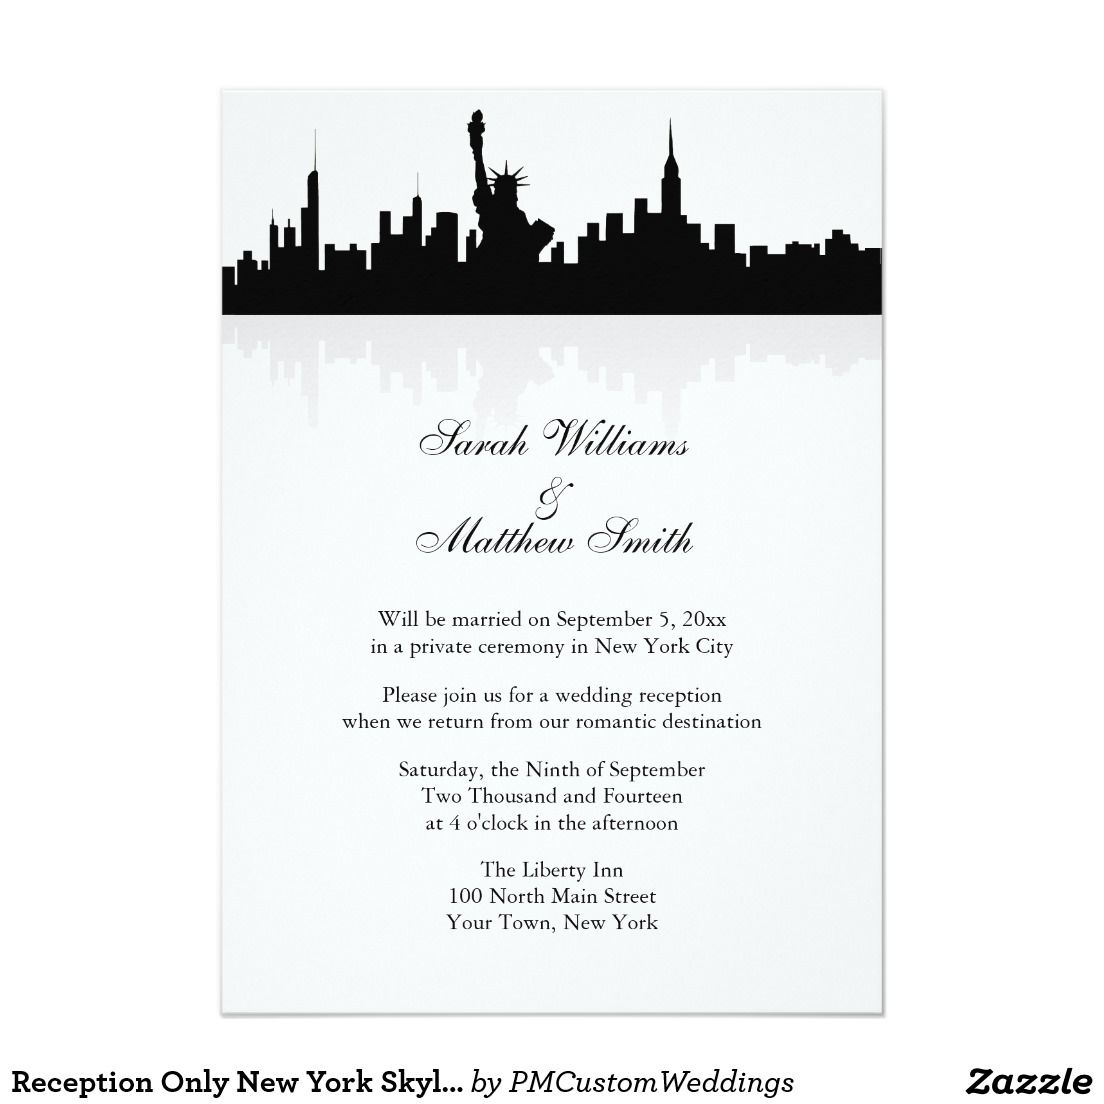 Reception only new york skyline wedding invitation invitation reception only new york skyline wedding invitation stopboris Gallery